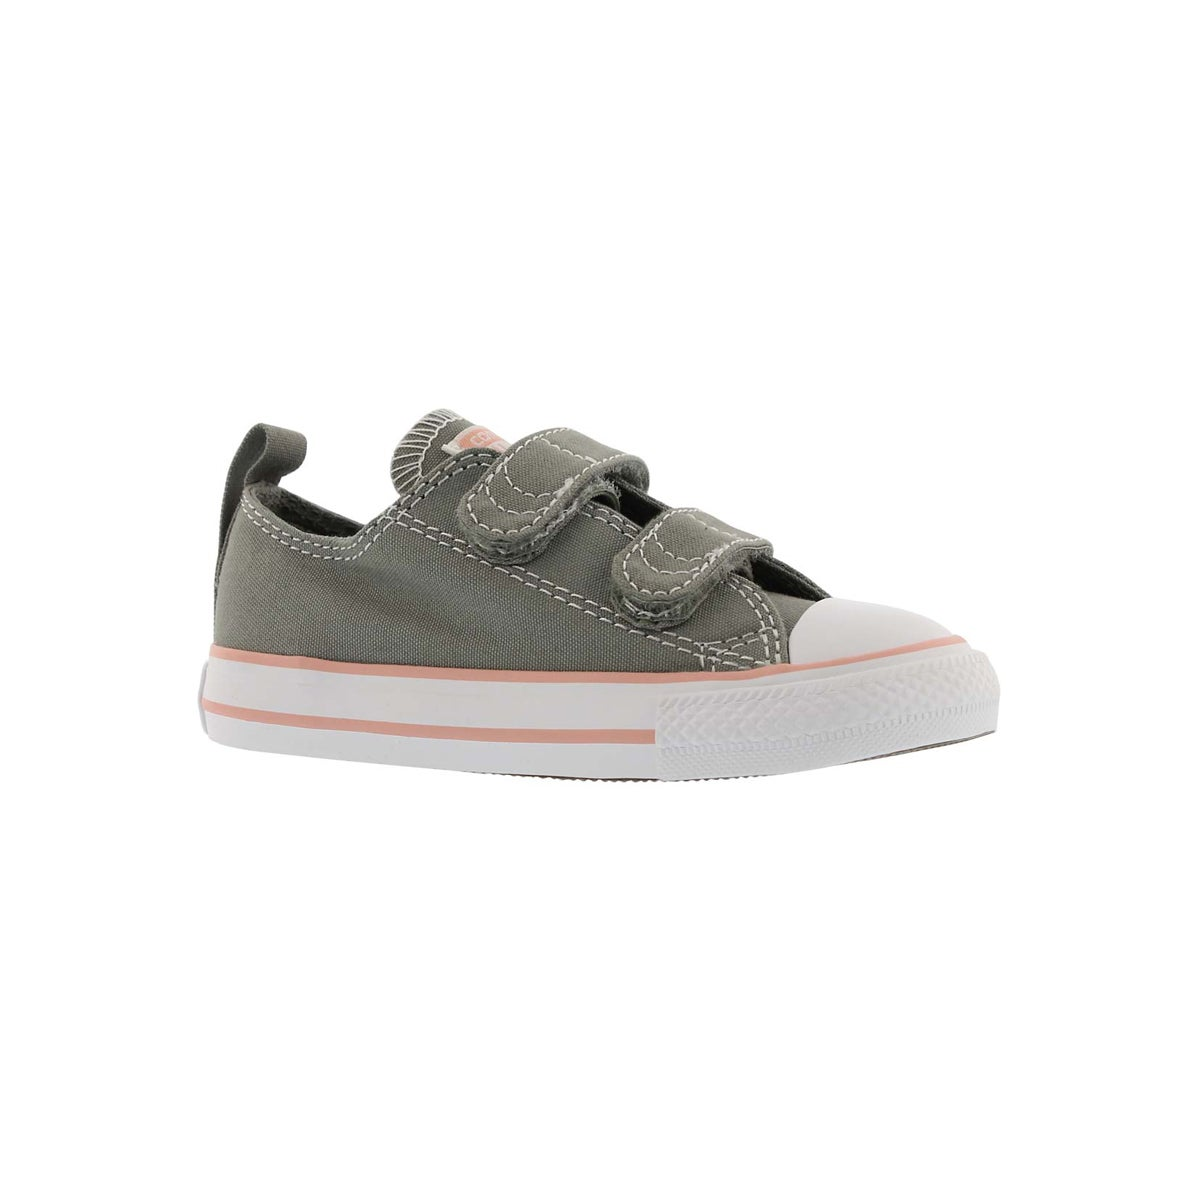 Infants' CT ALL STAR 2V stucco/coral sneakers